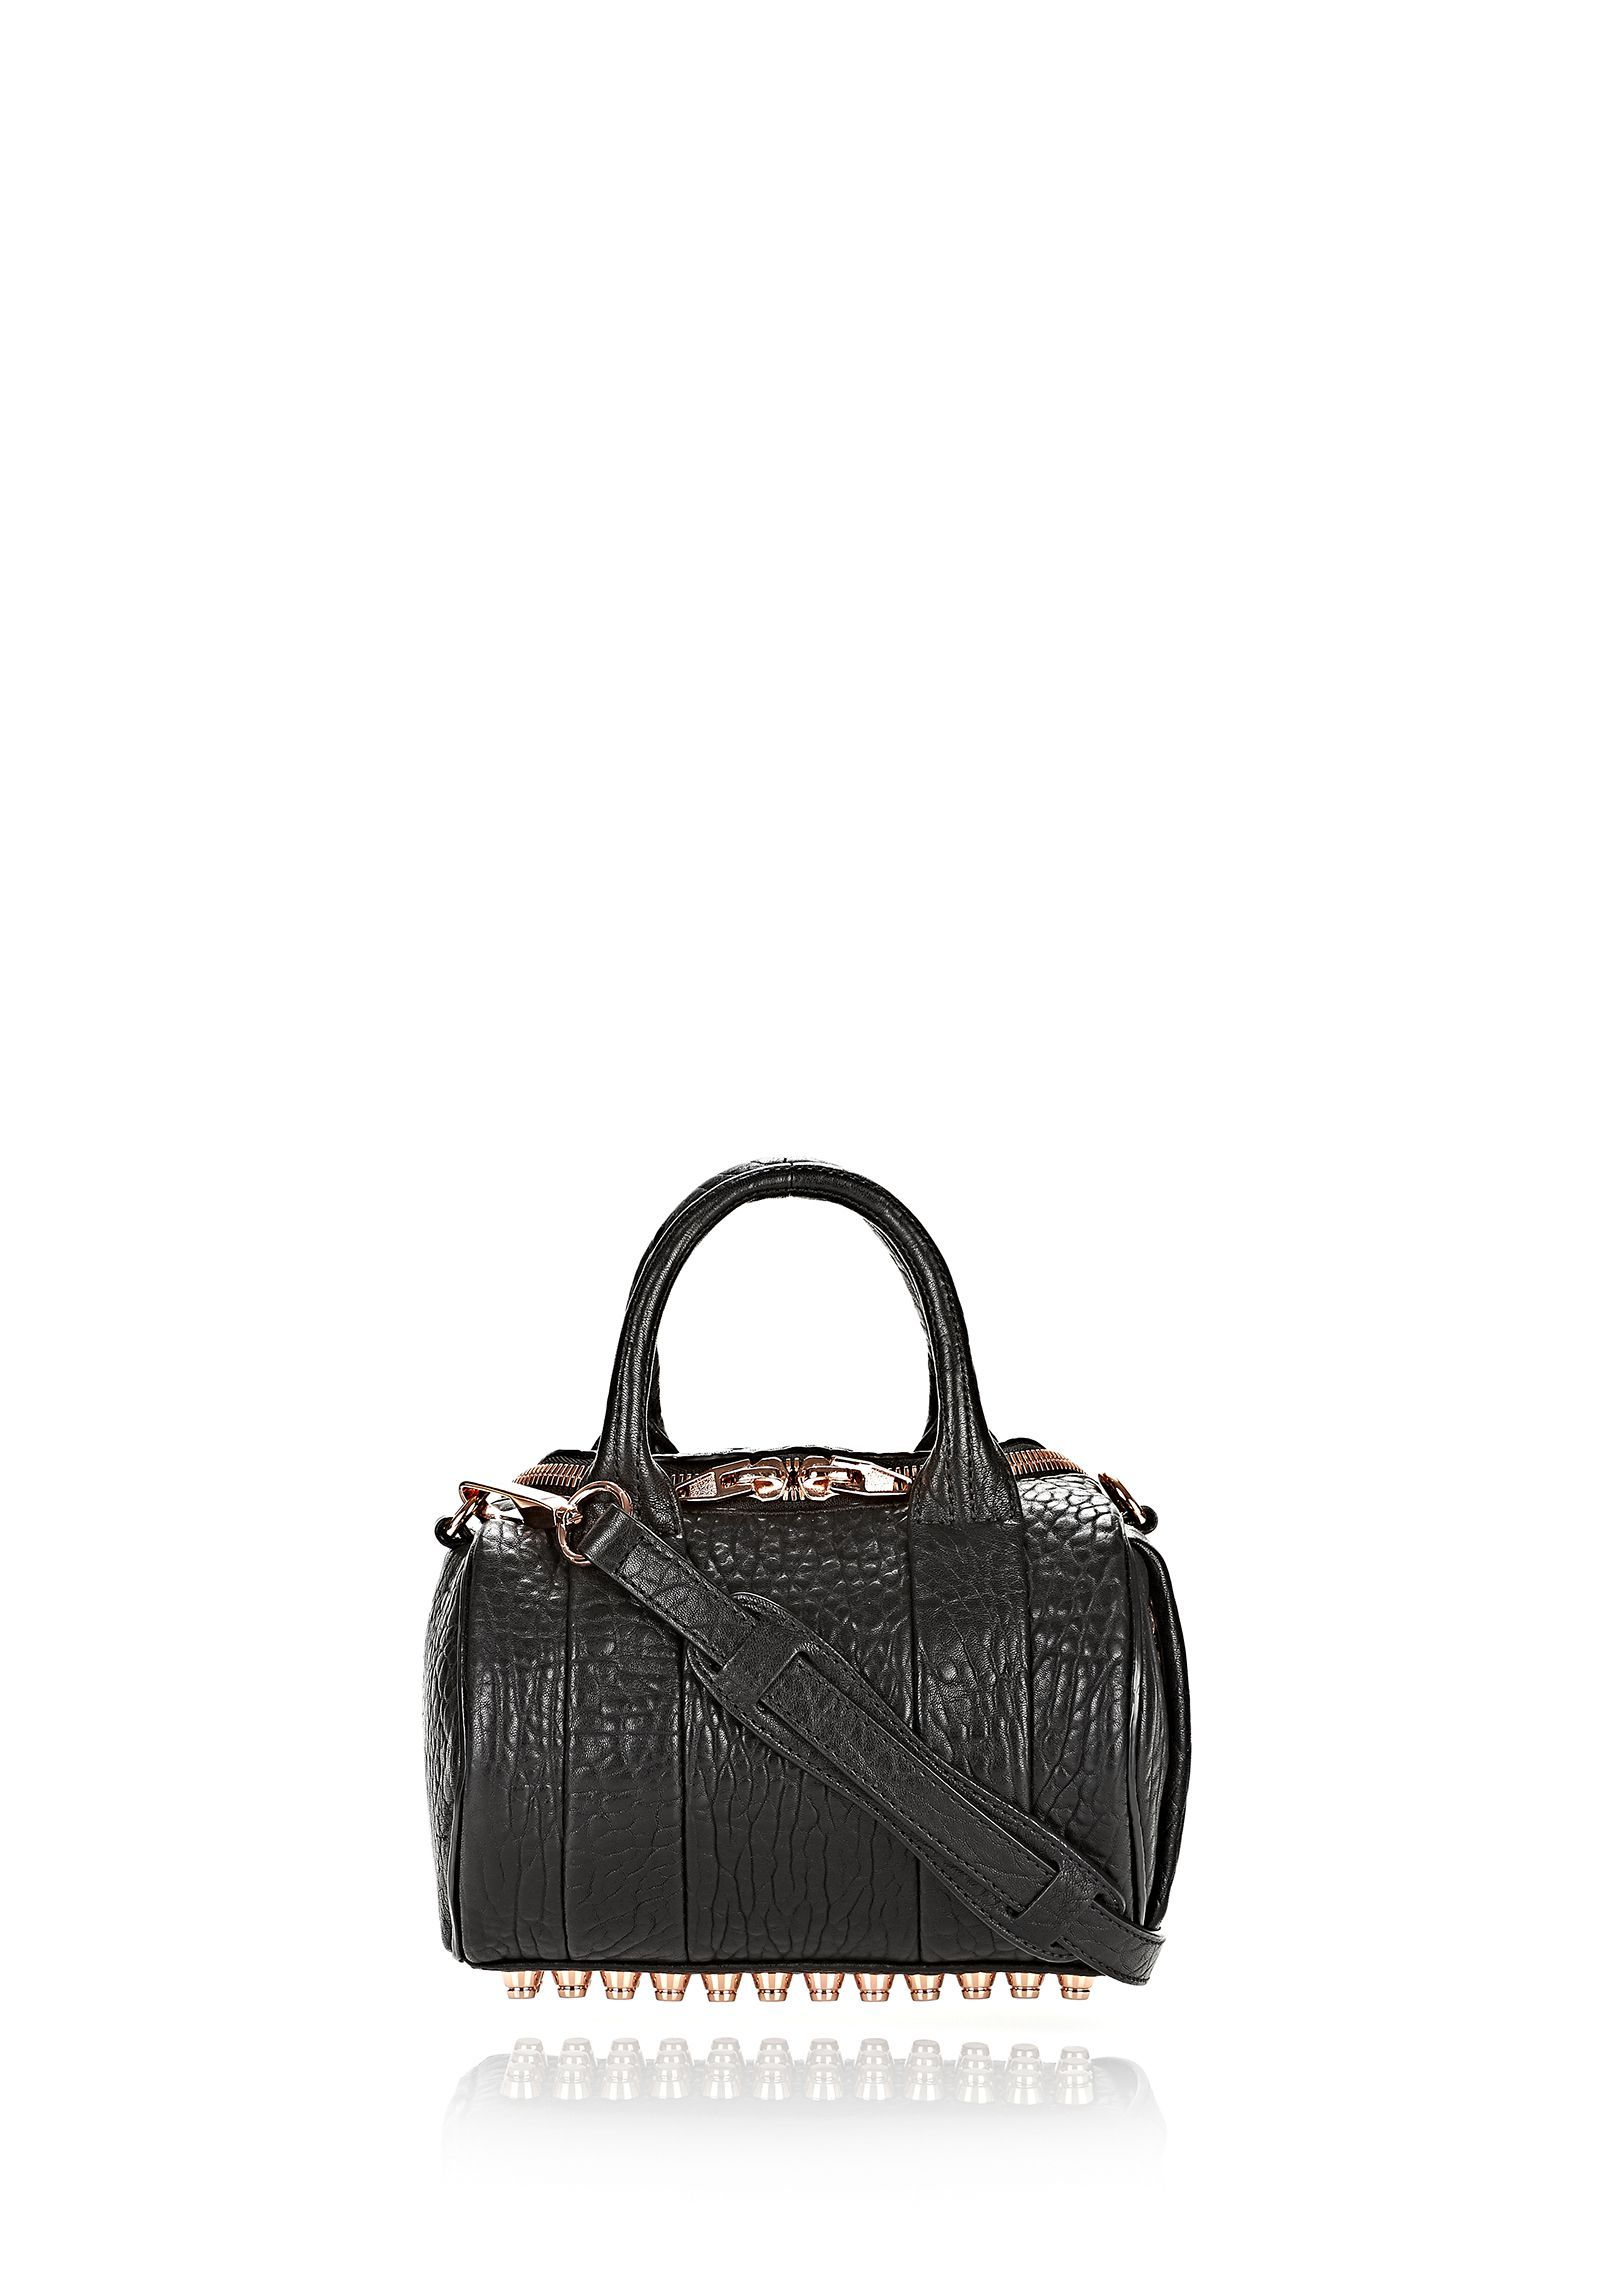 MINI ROCKIE IN PEBBLED BLACK WITH ROSE GOLD | Shoulder Bags | Alexander Wang Official Site